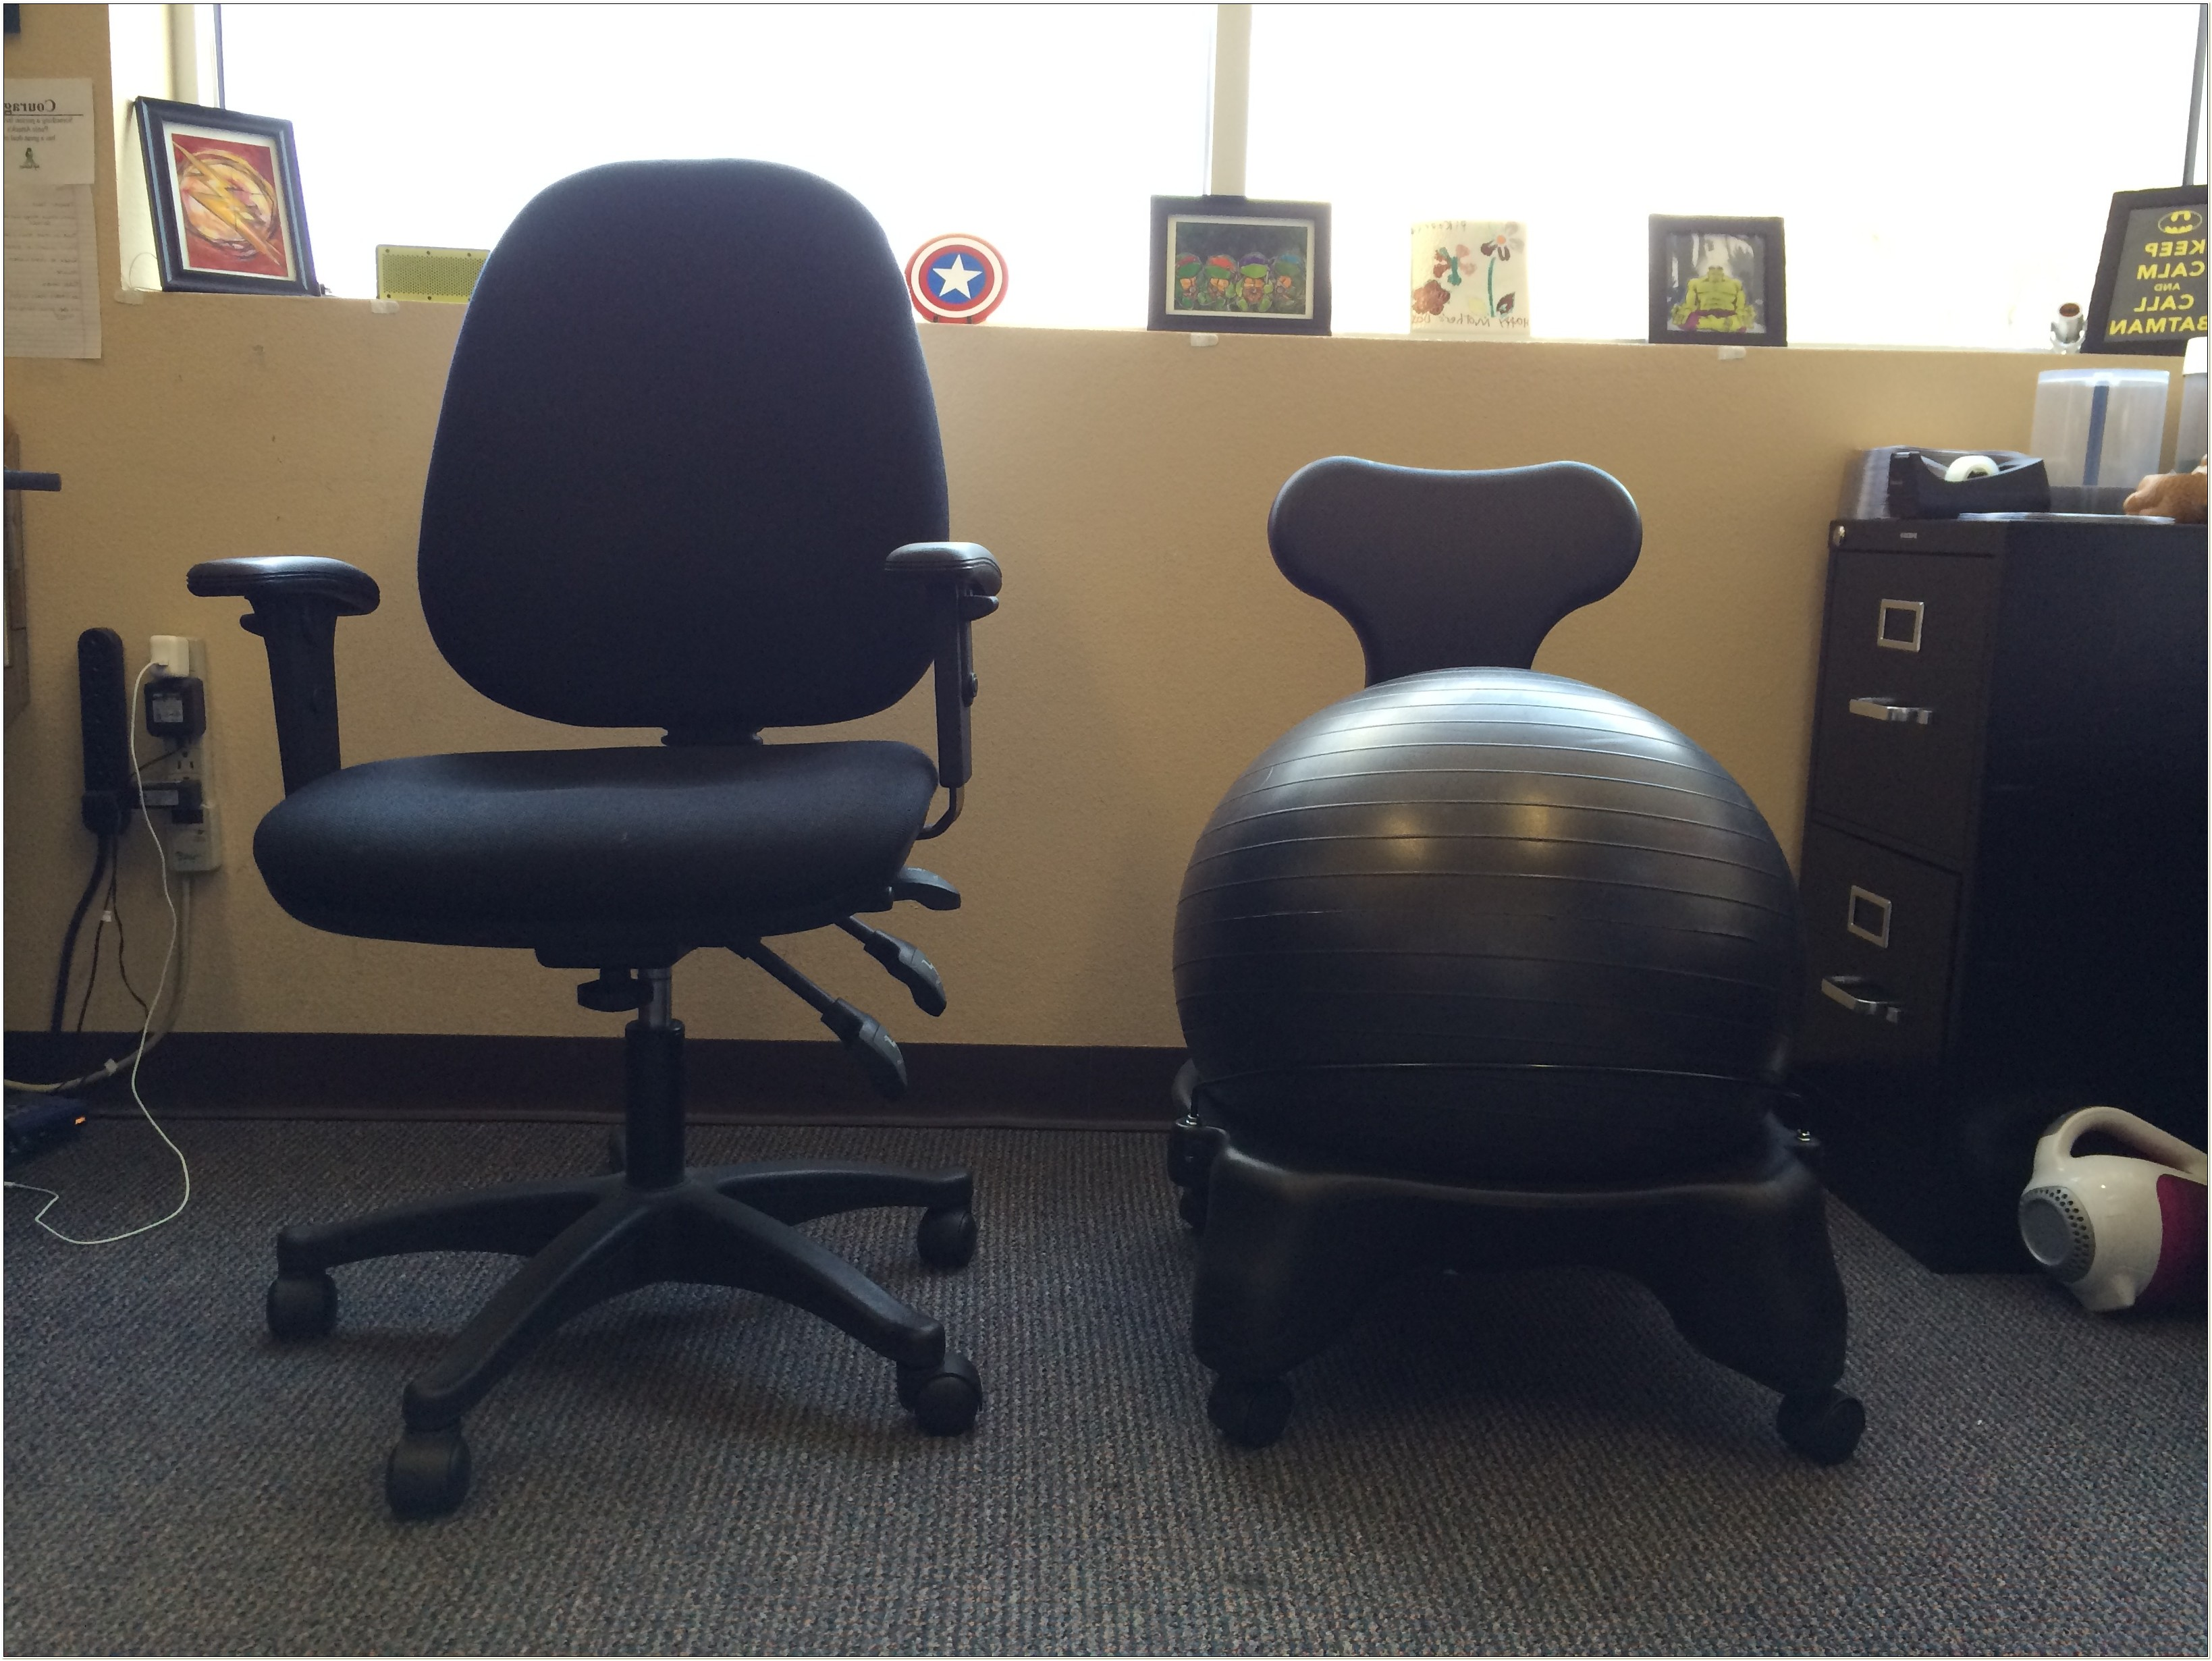 Yoga Ball Office Chair Good Or Bad